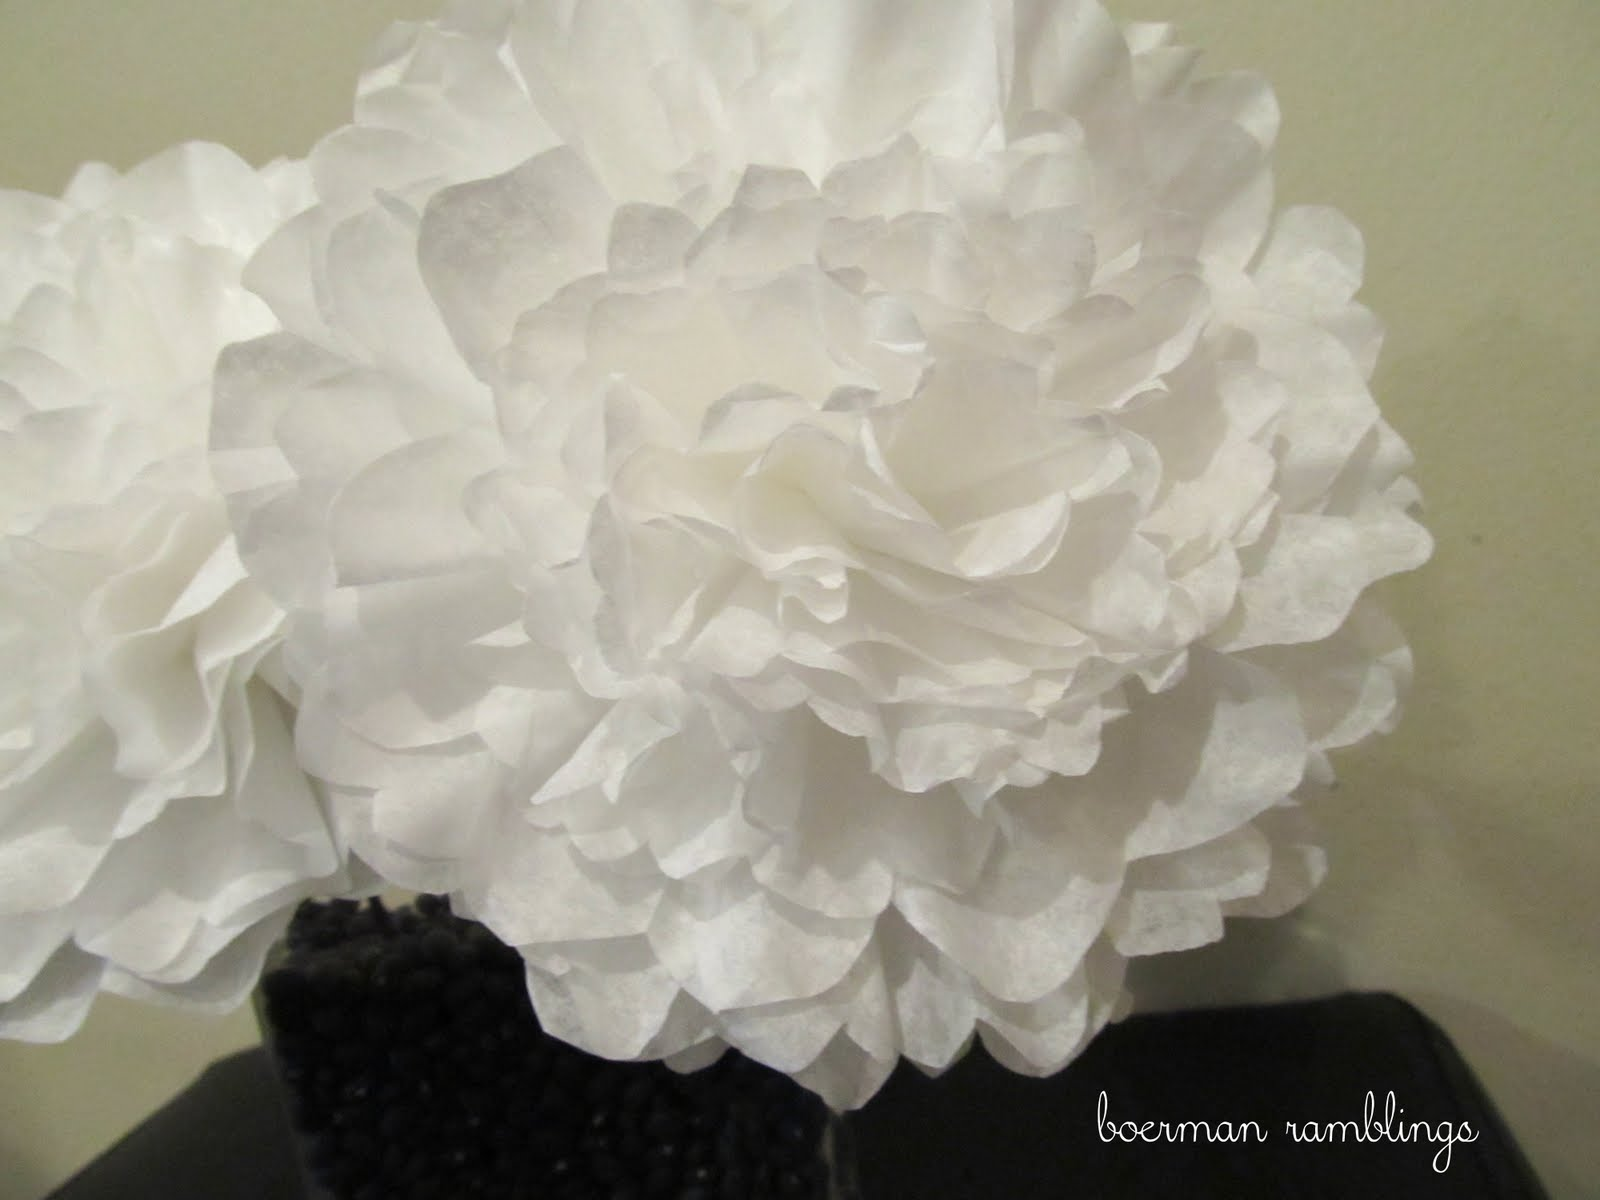 Coffee Filters Vs Tissue Paper Or Weddings Why All The Fuss